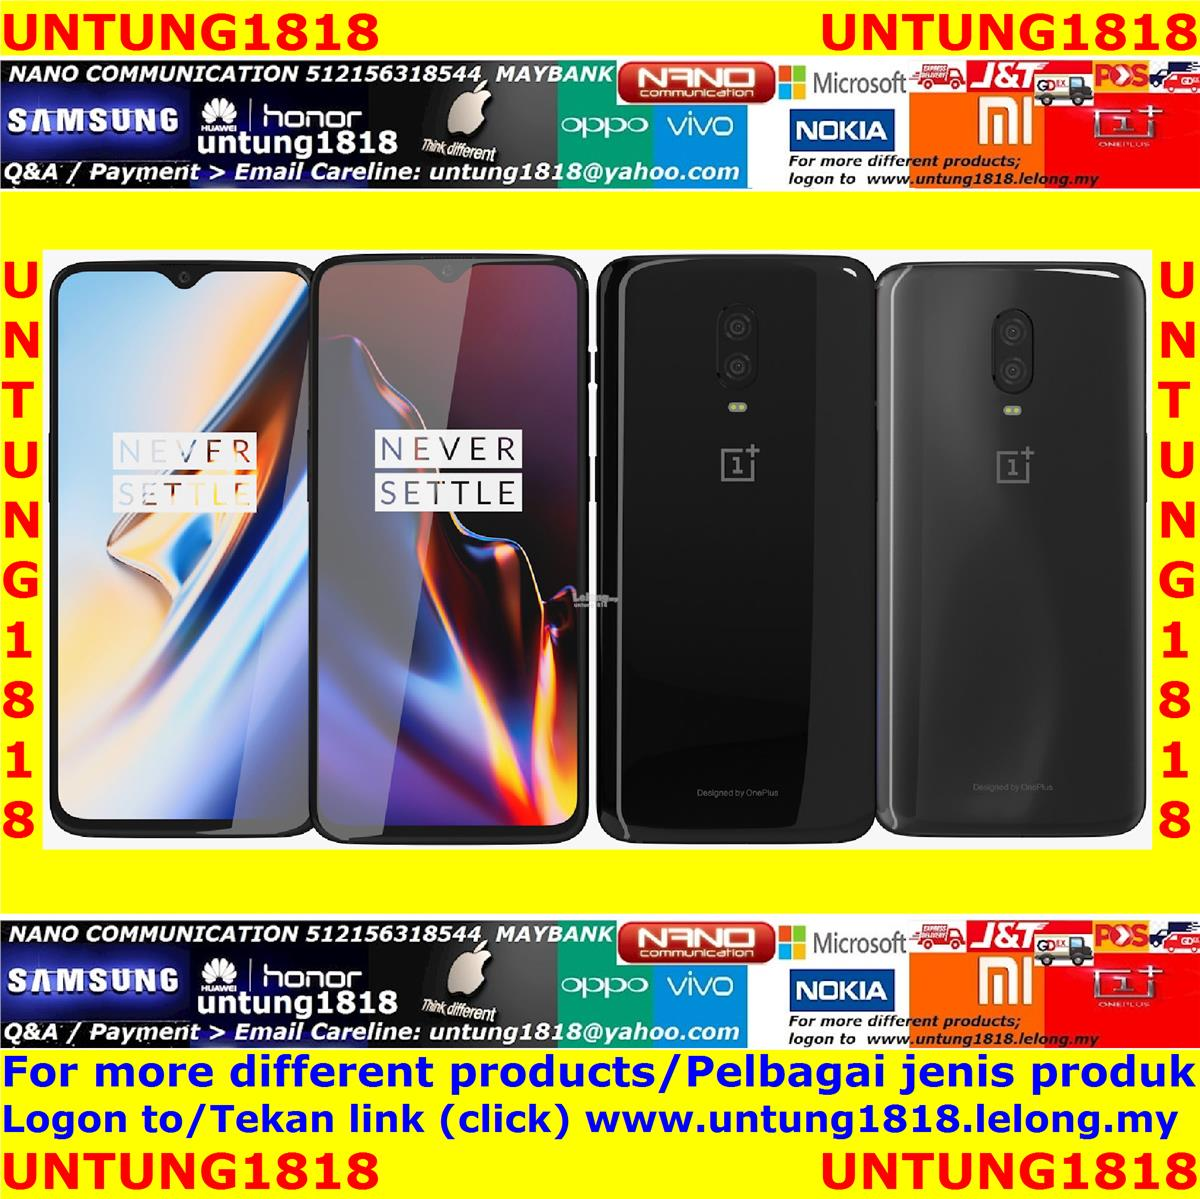 ORIGINAL_OnePlus 7 Pro OnePlus 6T McL (end 8/2/2019 3:51 PM